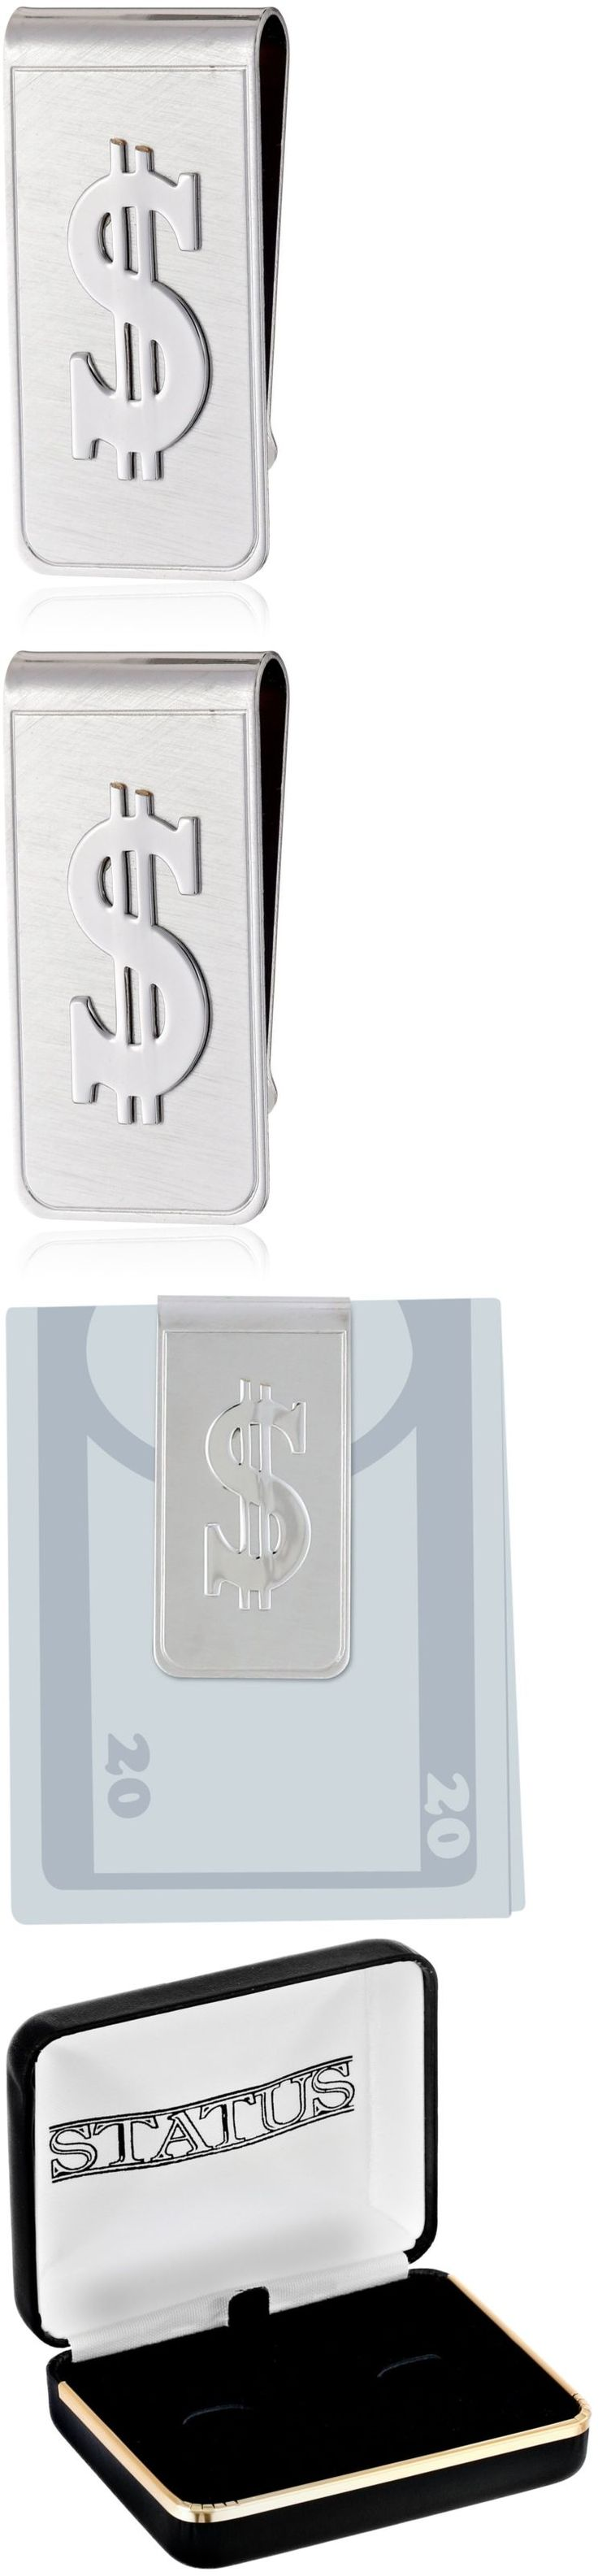 Money Clips 60120: Status Mens Money Clip Flat With $ Sign, Silver, One Size -> BUY IT NOW ONLY: $35.74 on eBay!